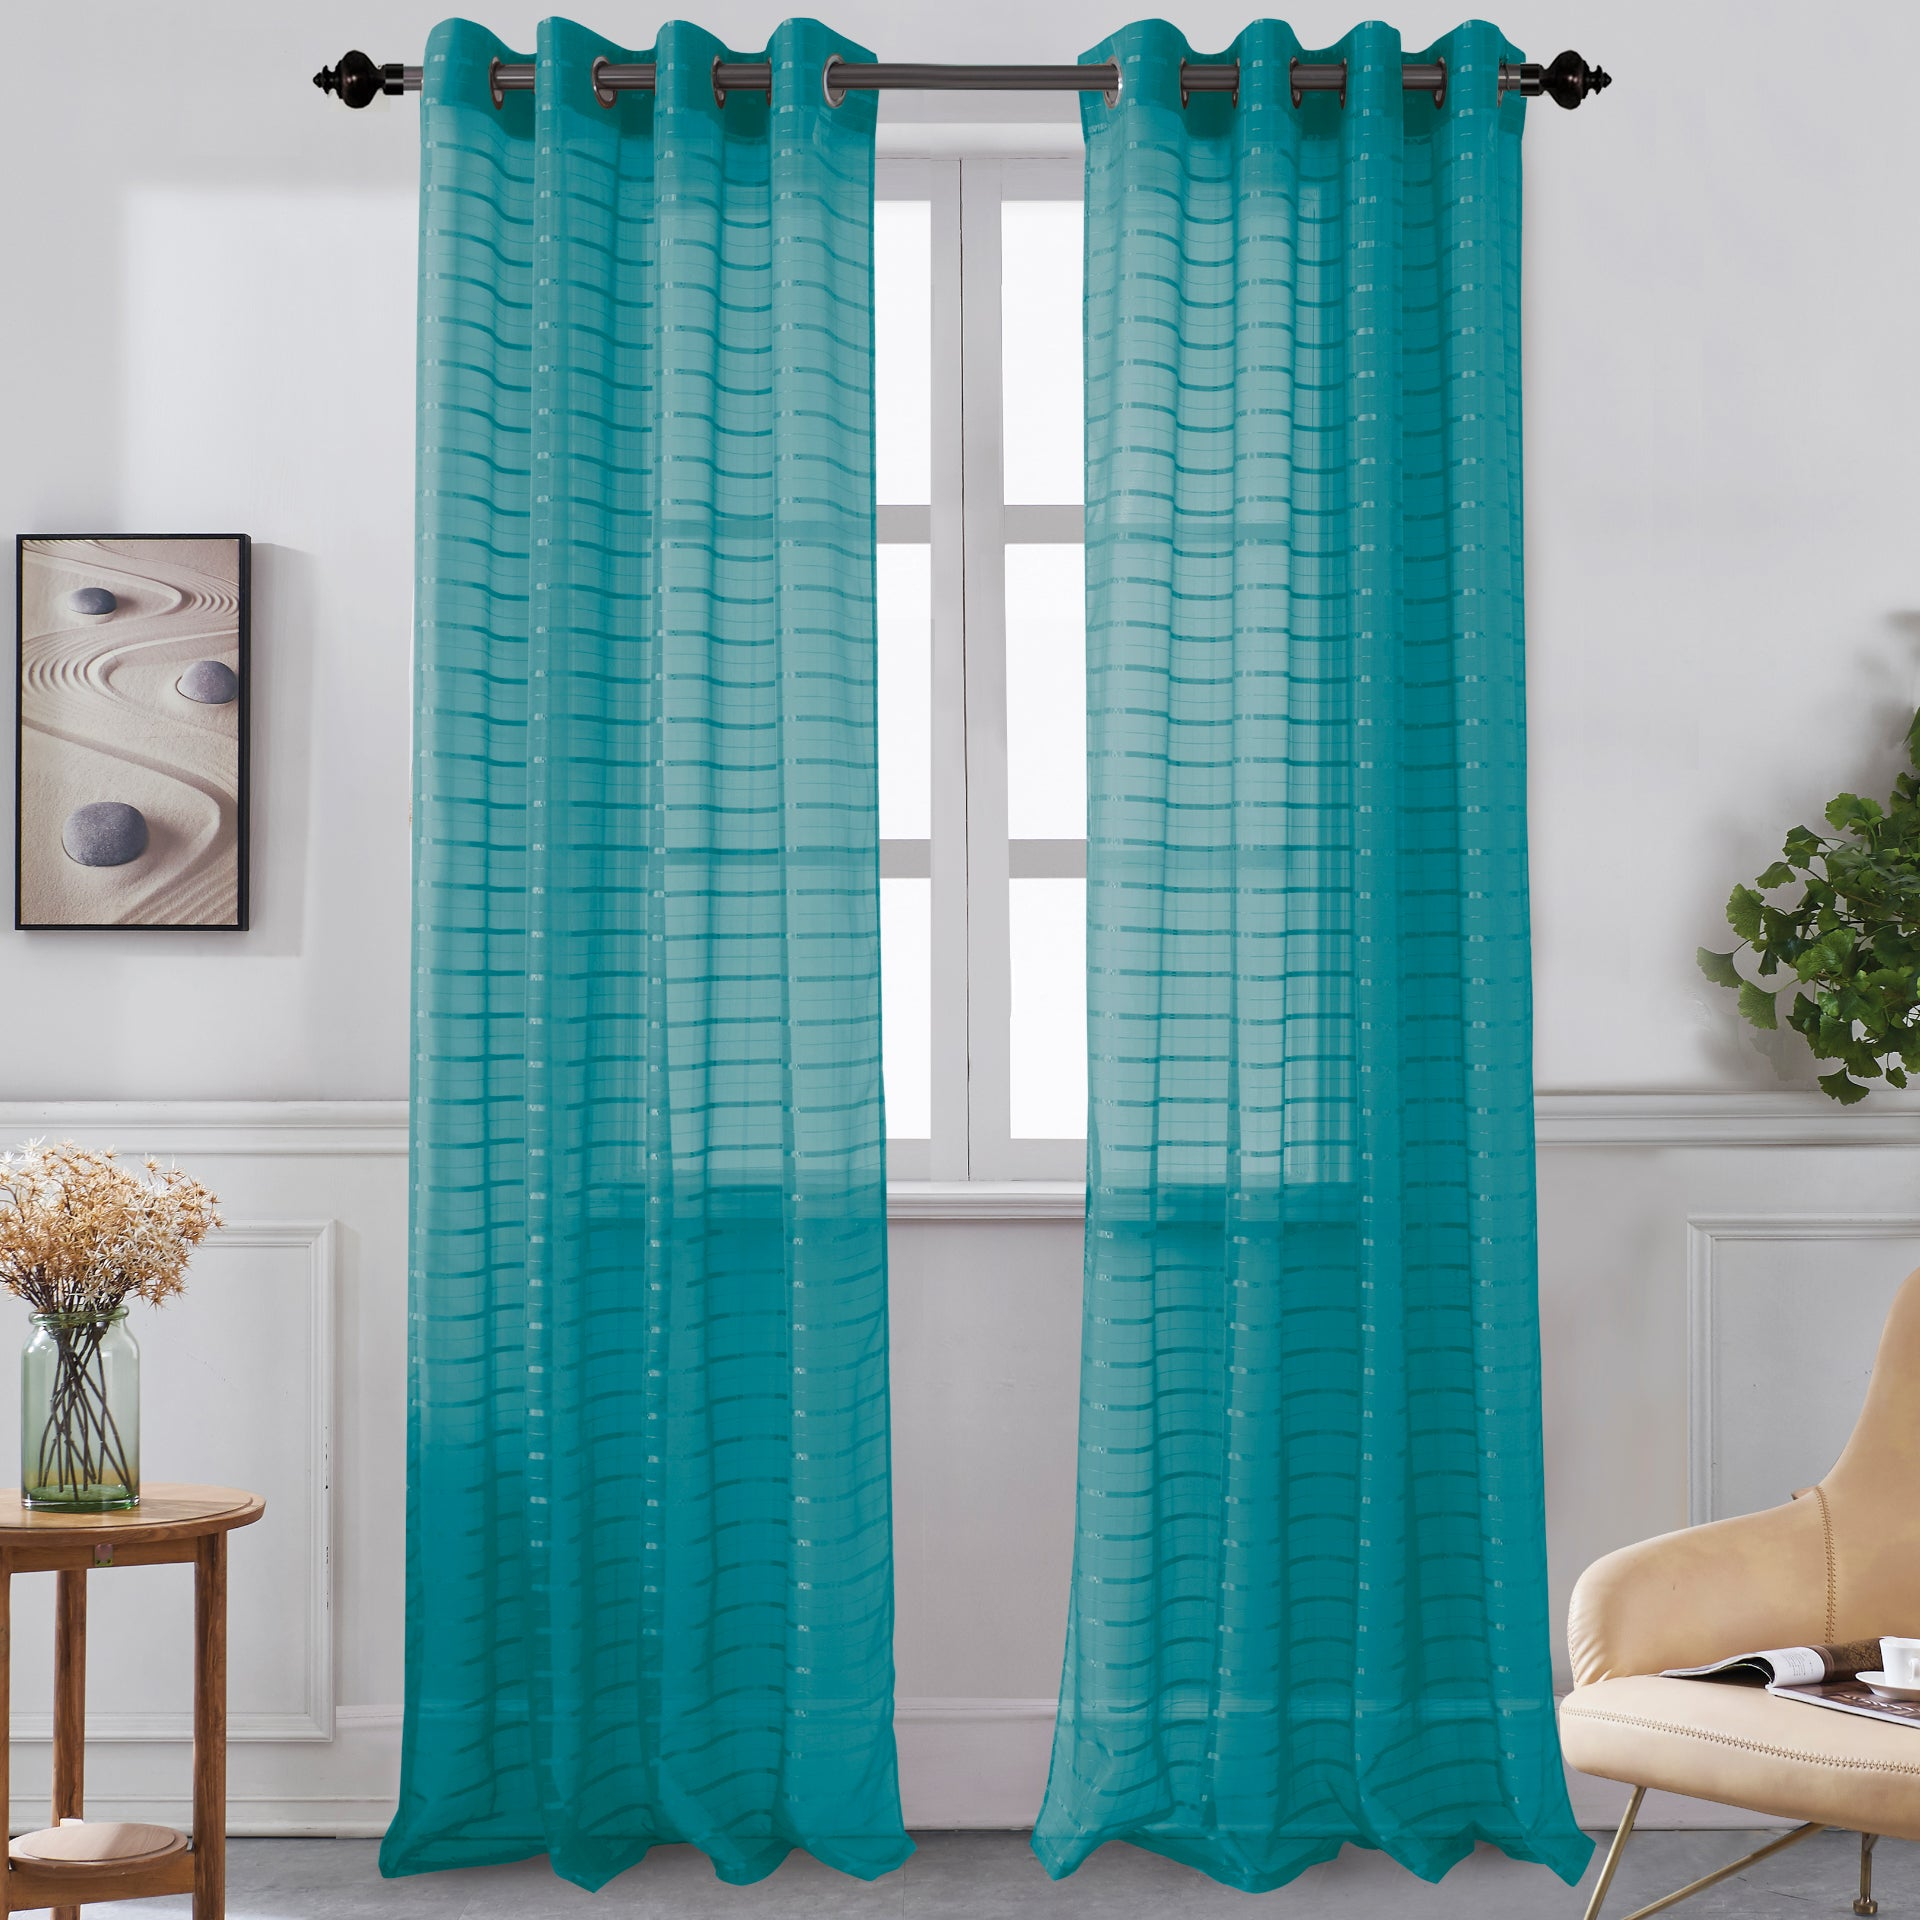 Karen - Grommet Sheer Panel - Set of Two - Assorted Colors - Glory Home Design